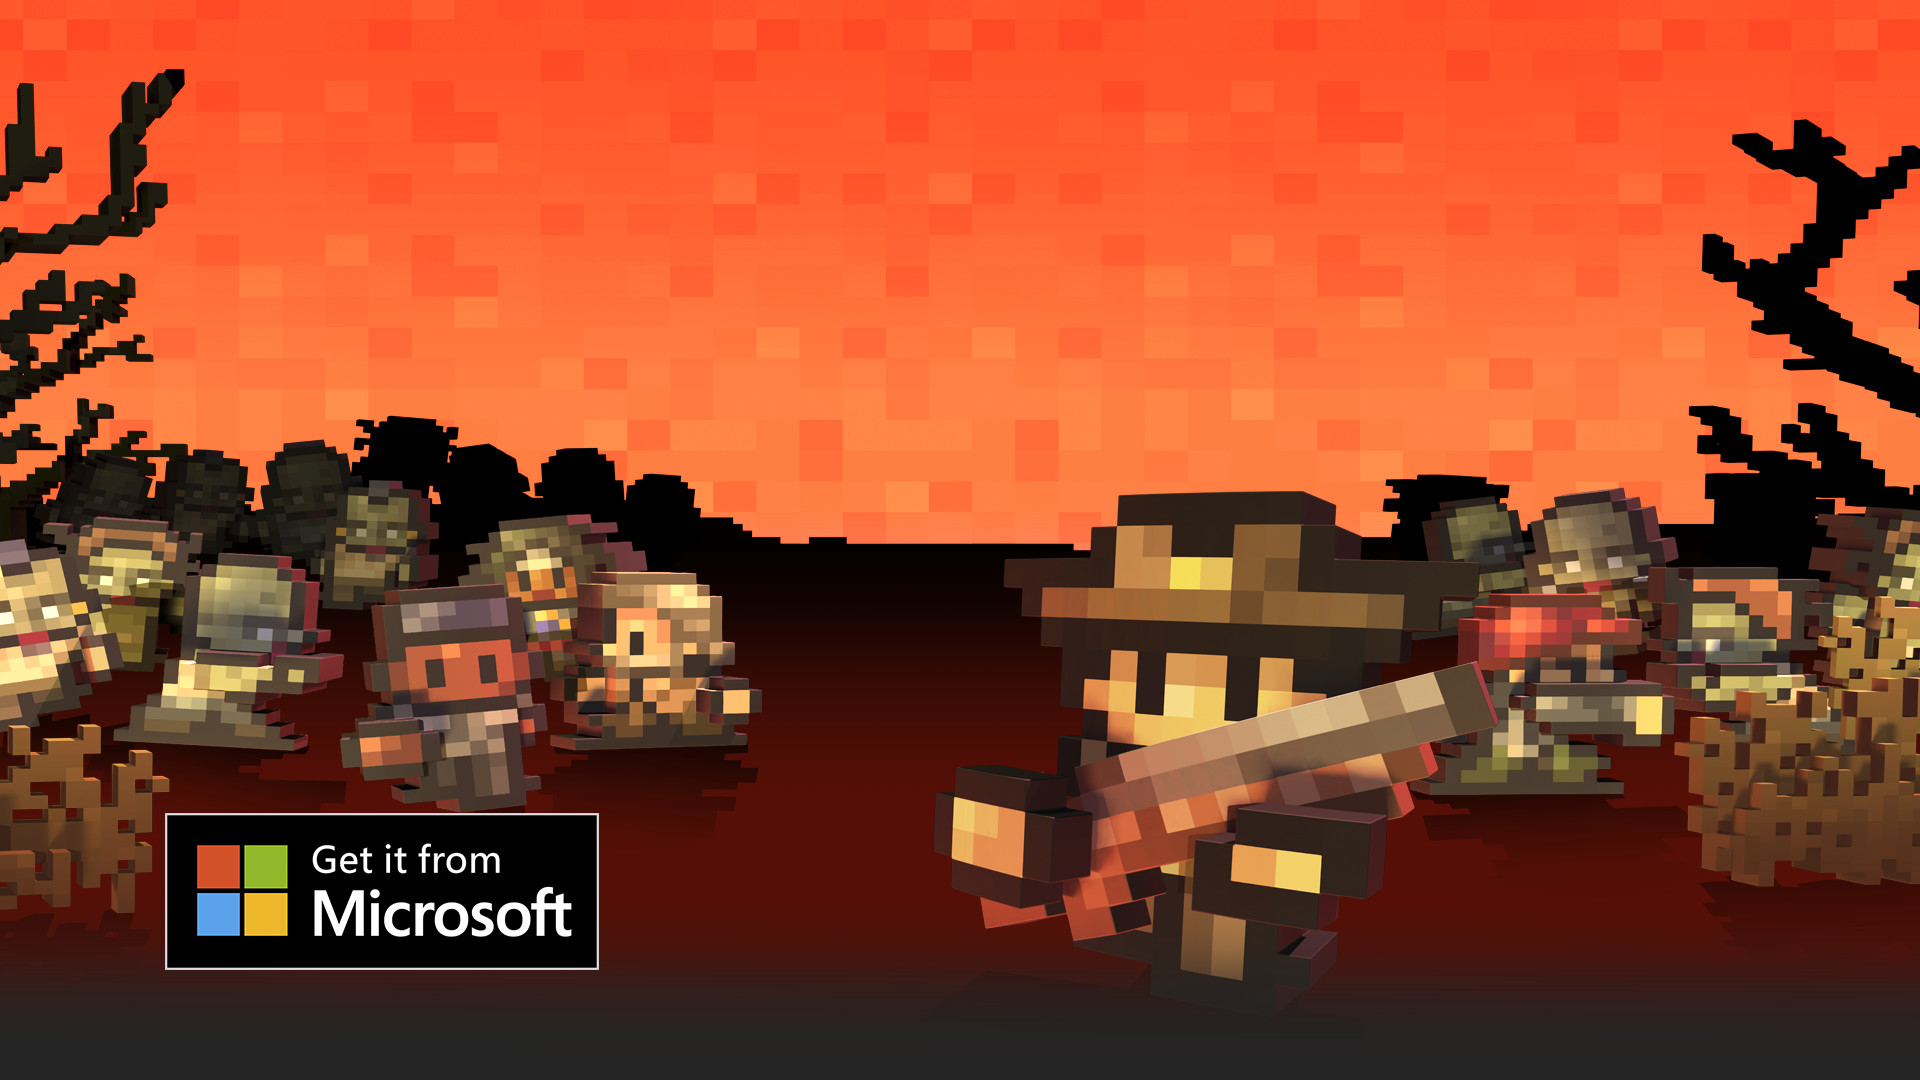 The Escapists: The Walking Dead is out now on Windows 10